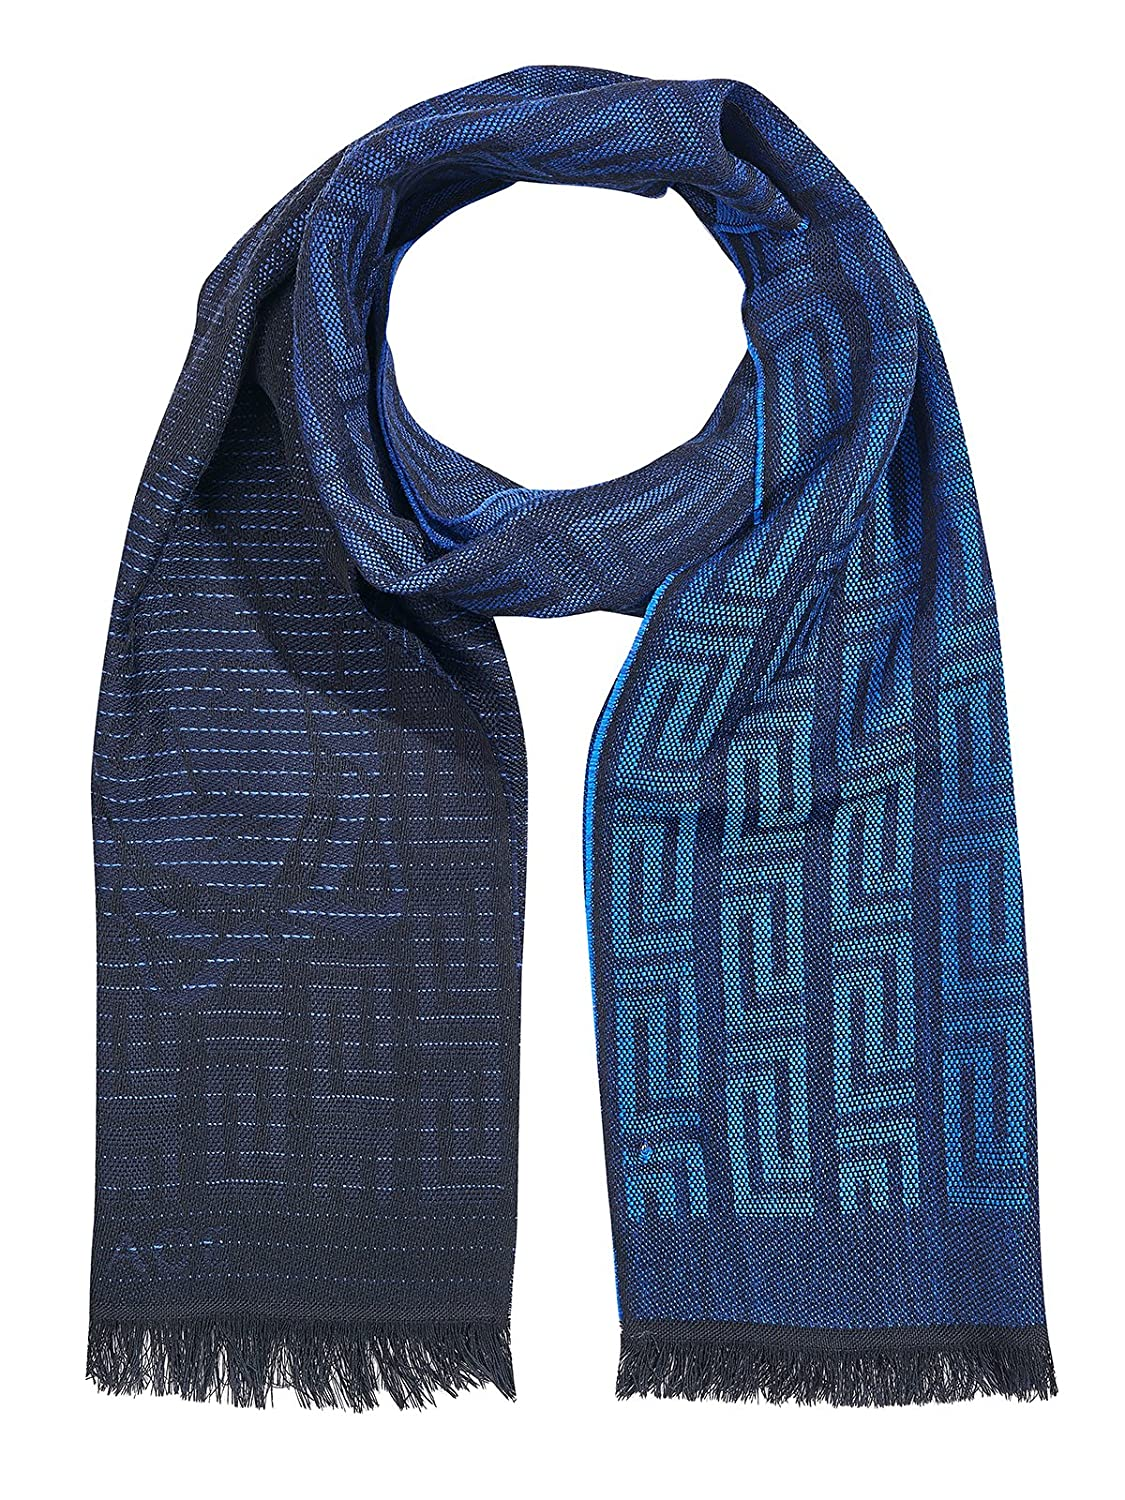 Versace Collection Blue Black Medusa Geometric Scarf